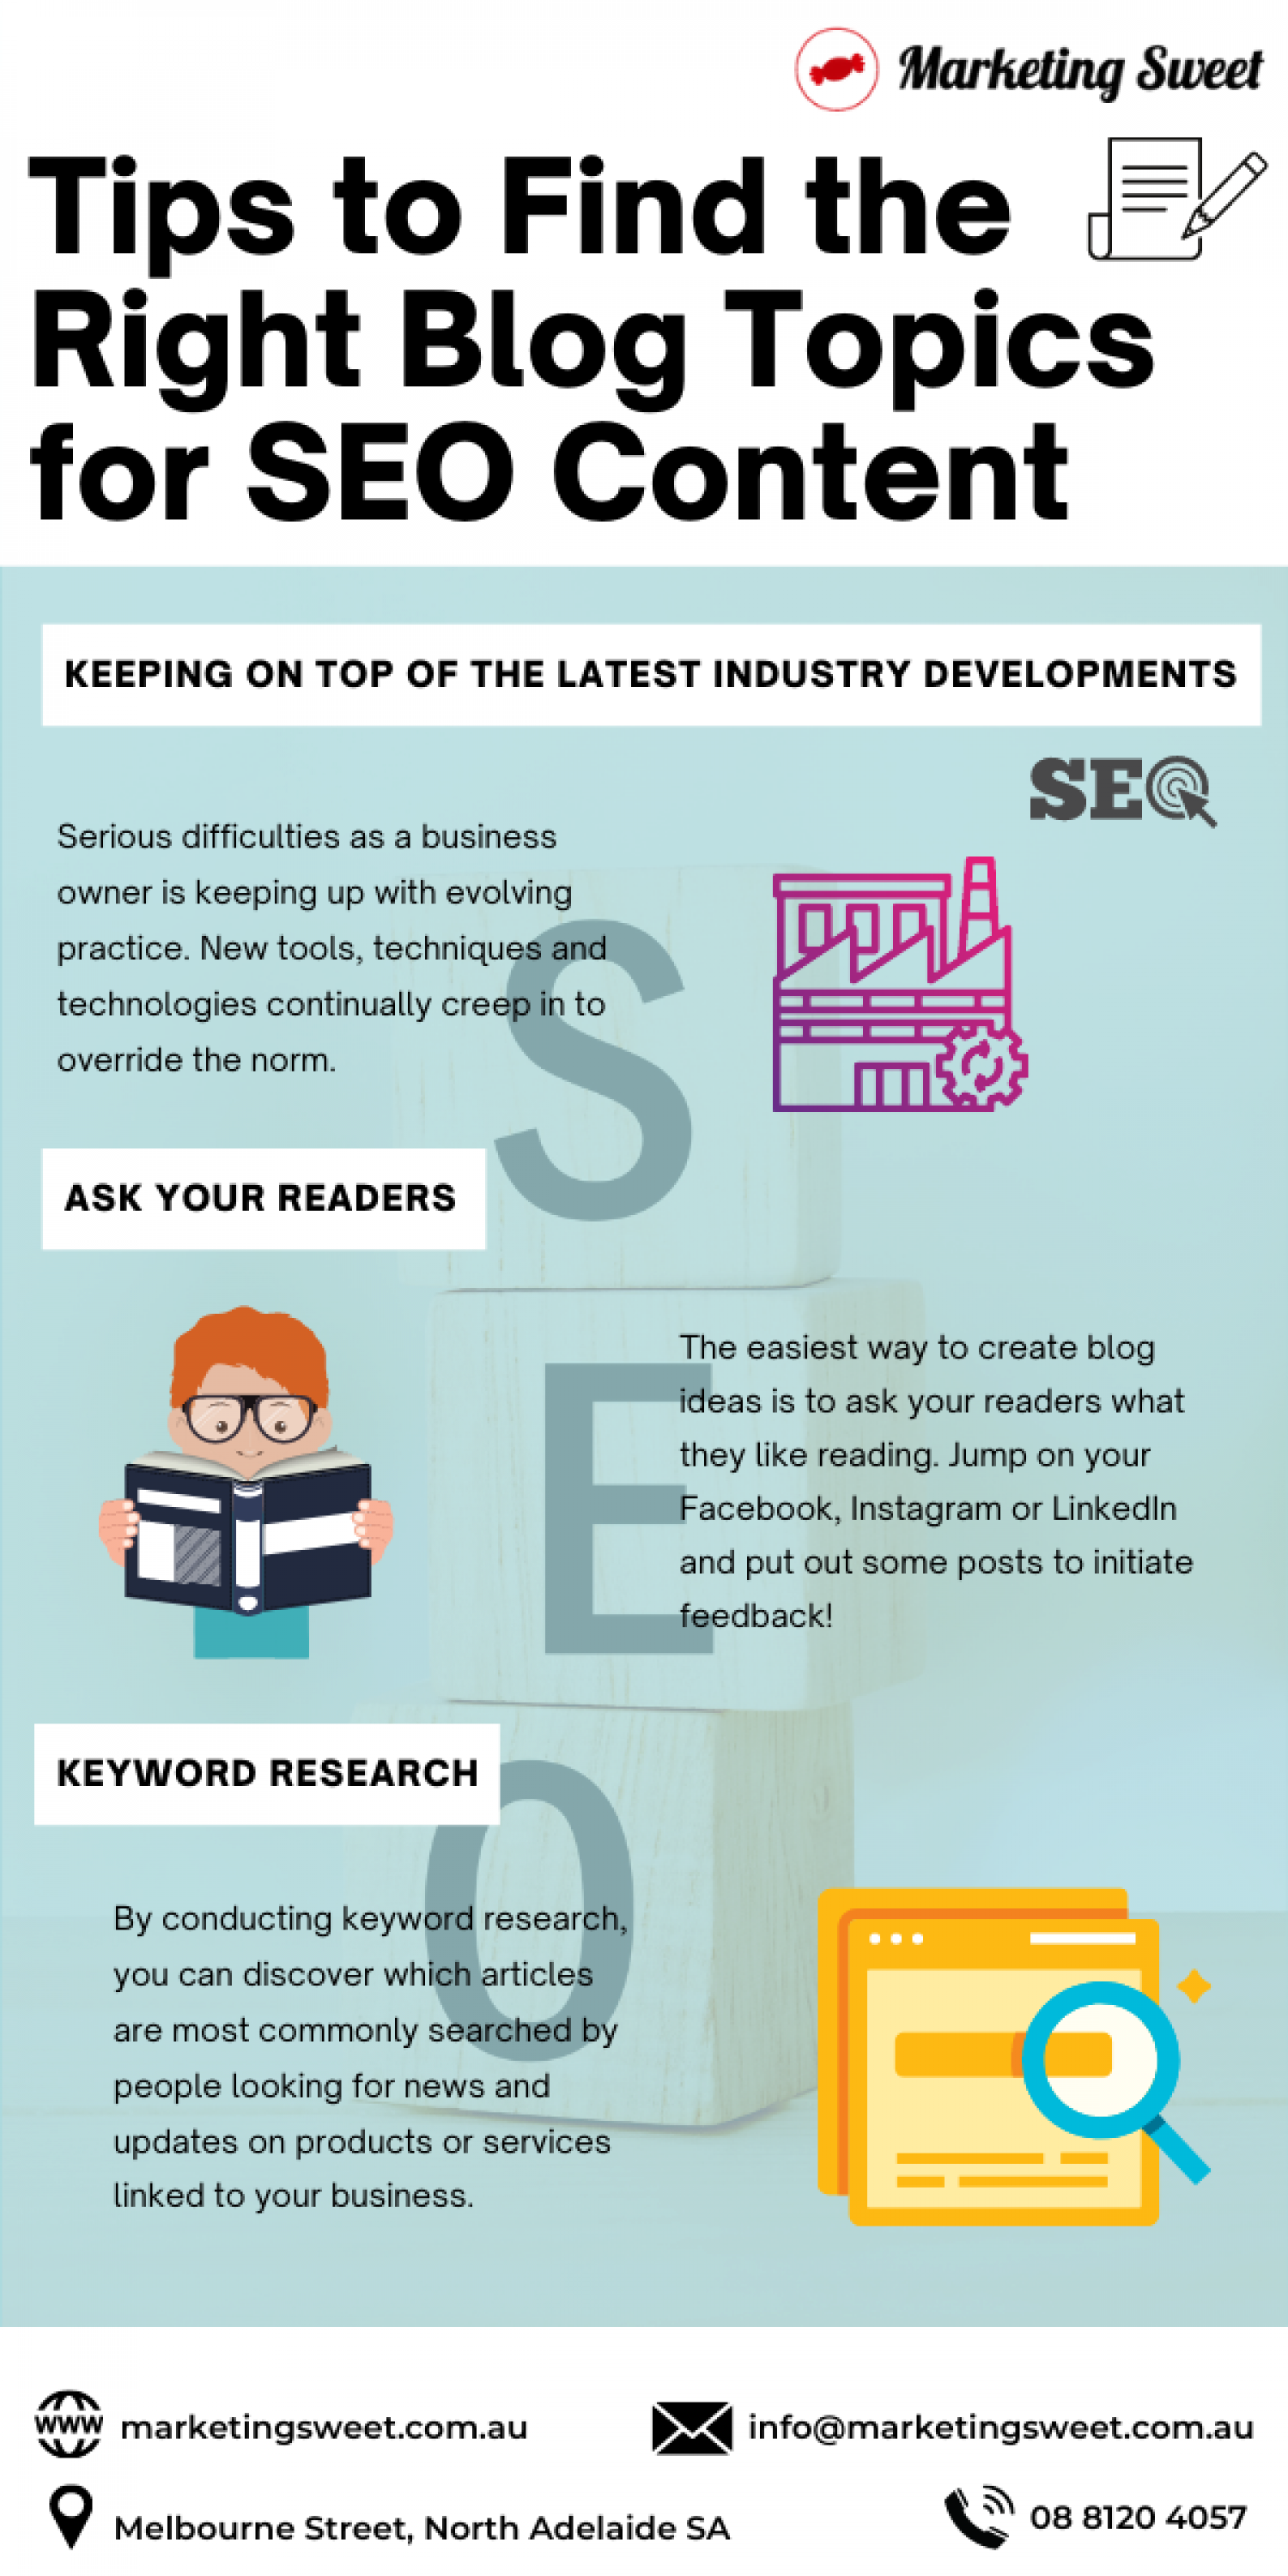 Tips to Find the Right Blog Topics for SEO Content Infographic